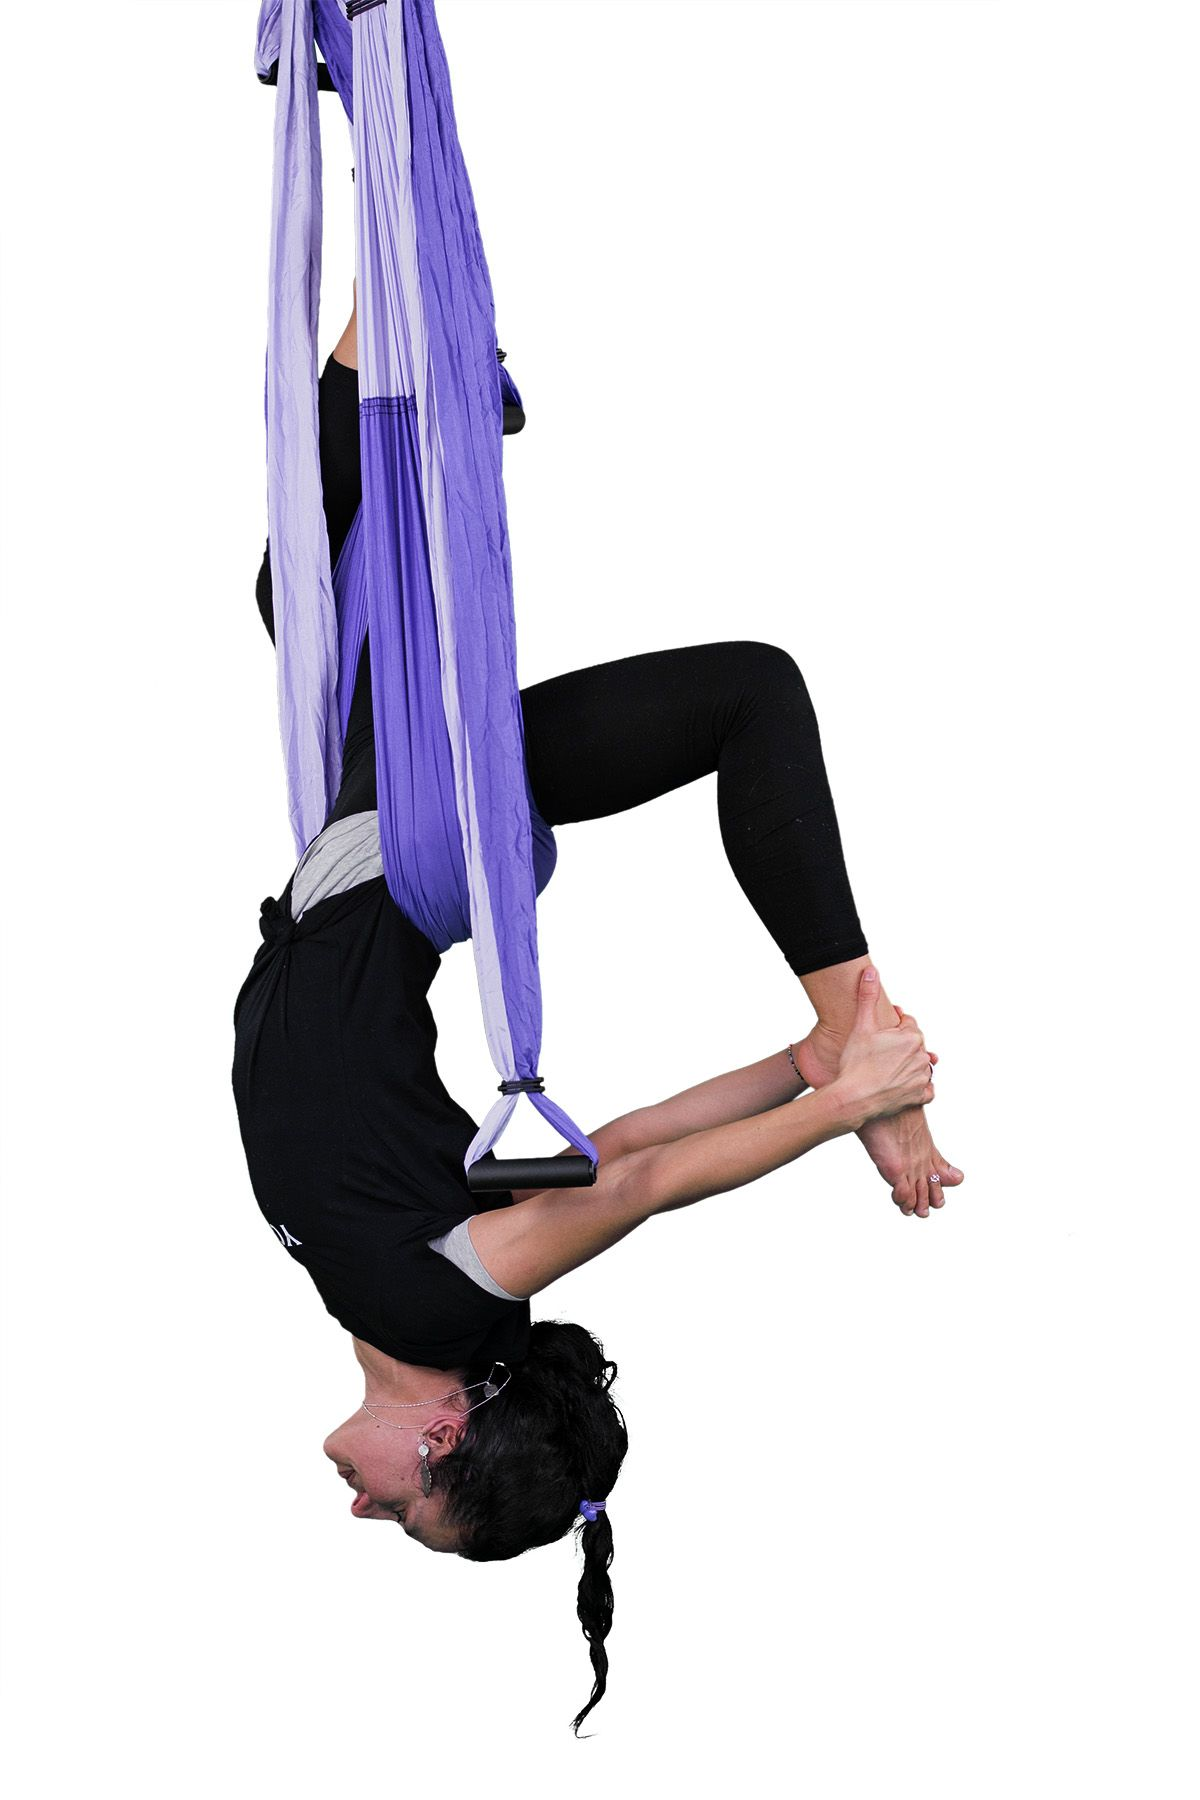 Achieve deeper backbends u instant back pain relief wthe yoga